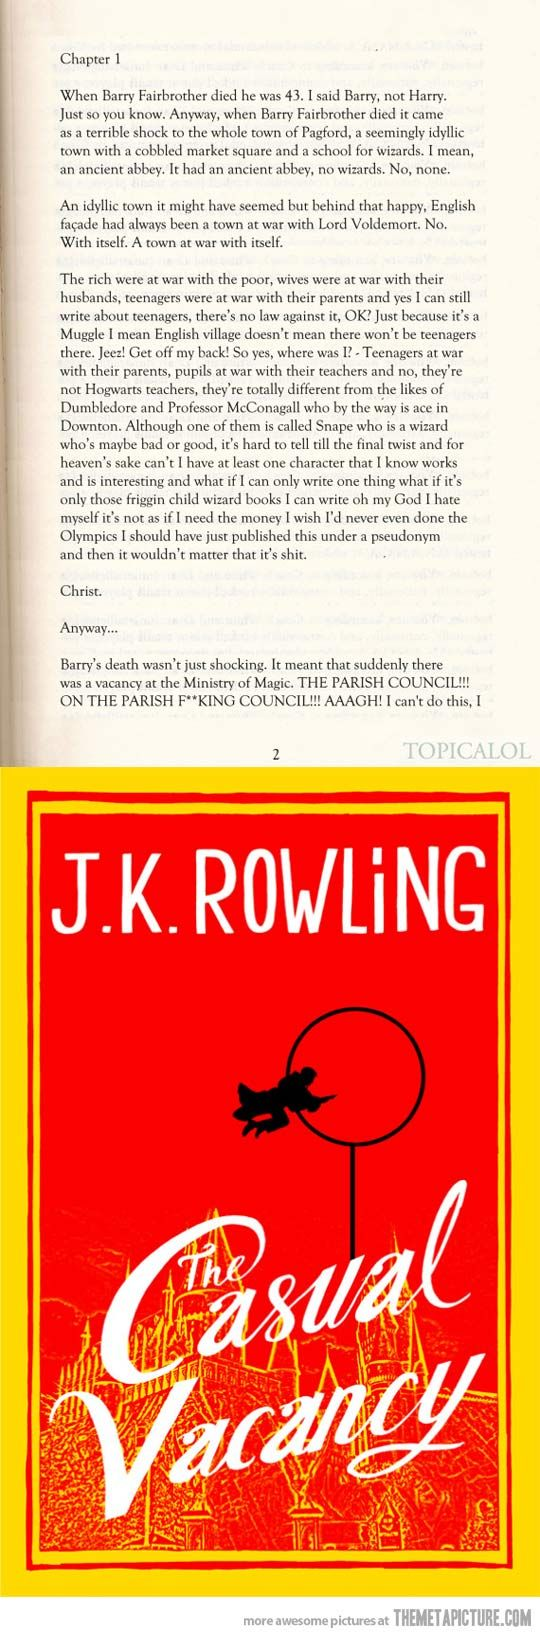 "JK Rowling's new Adult Novel ""The Casual Vacancy"". First page."